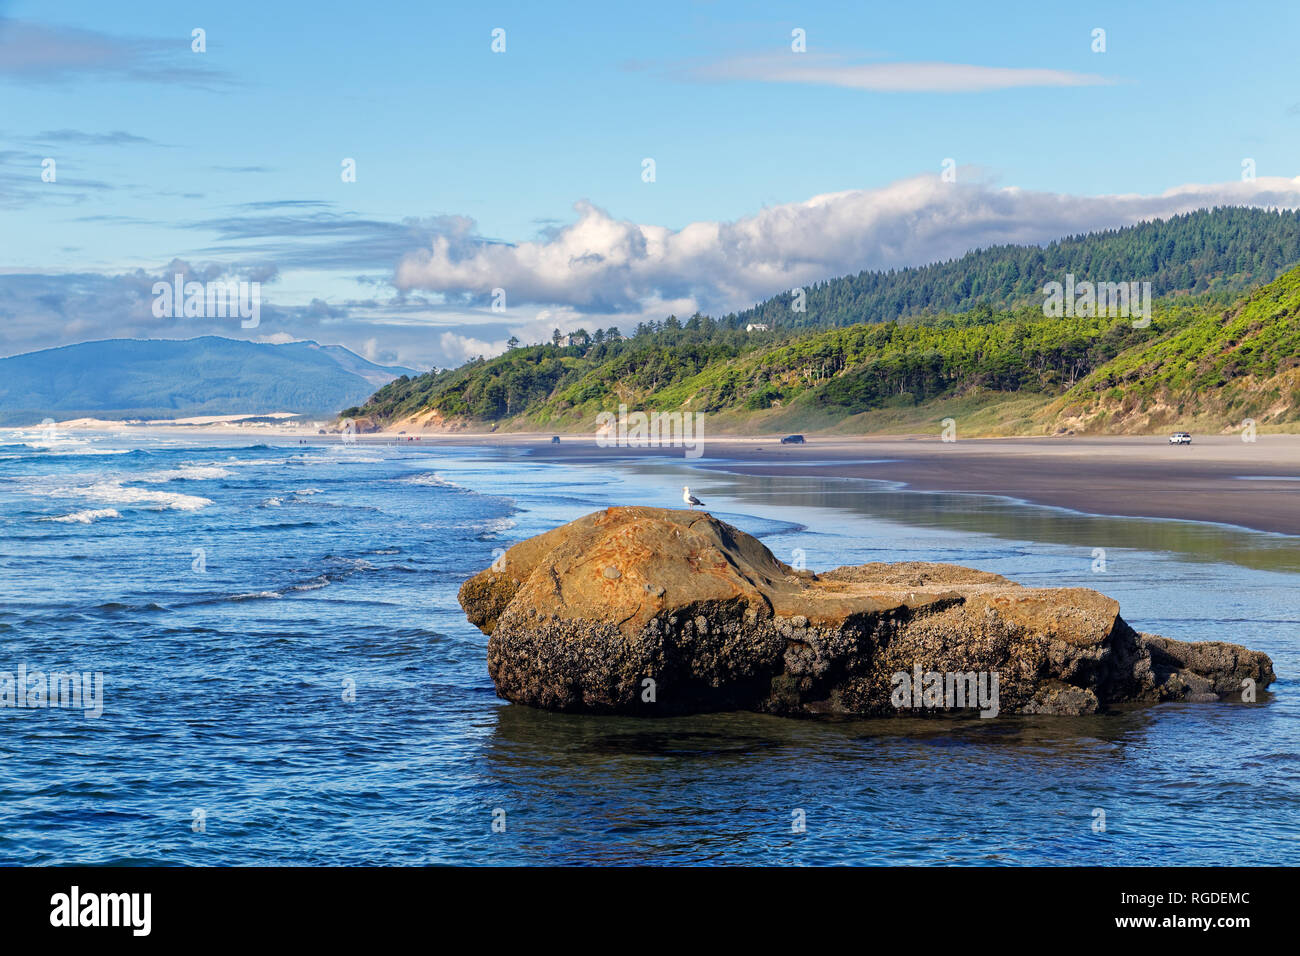 43,362.02366 ocean beach landscape seascape shoreline green conifer forest, boulder in water with Western seagull bird standing on top, blue water sky - Stock Image